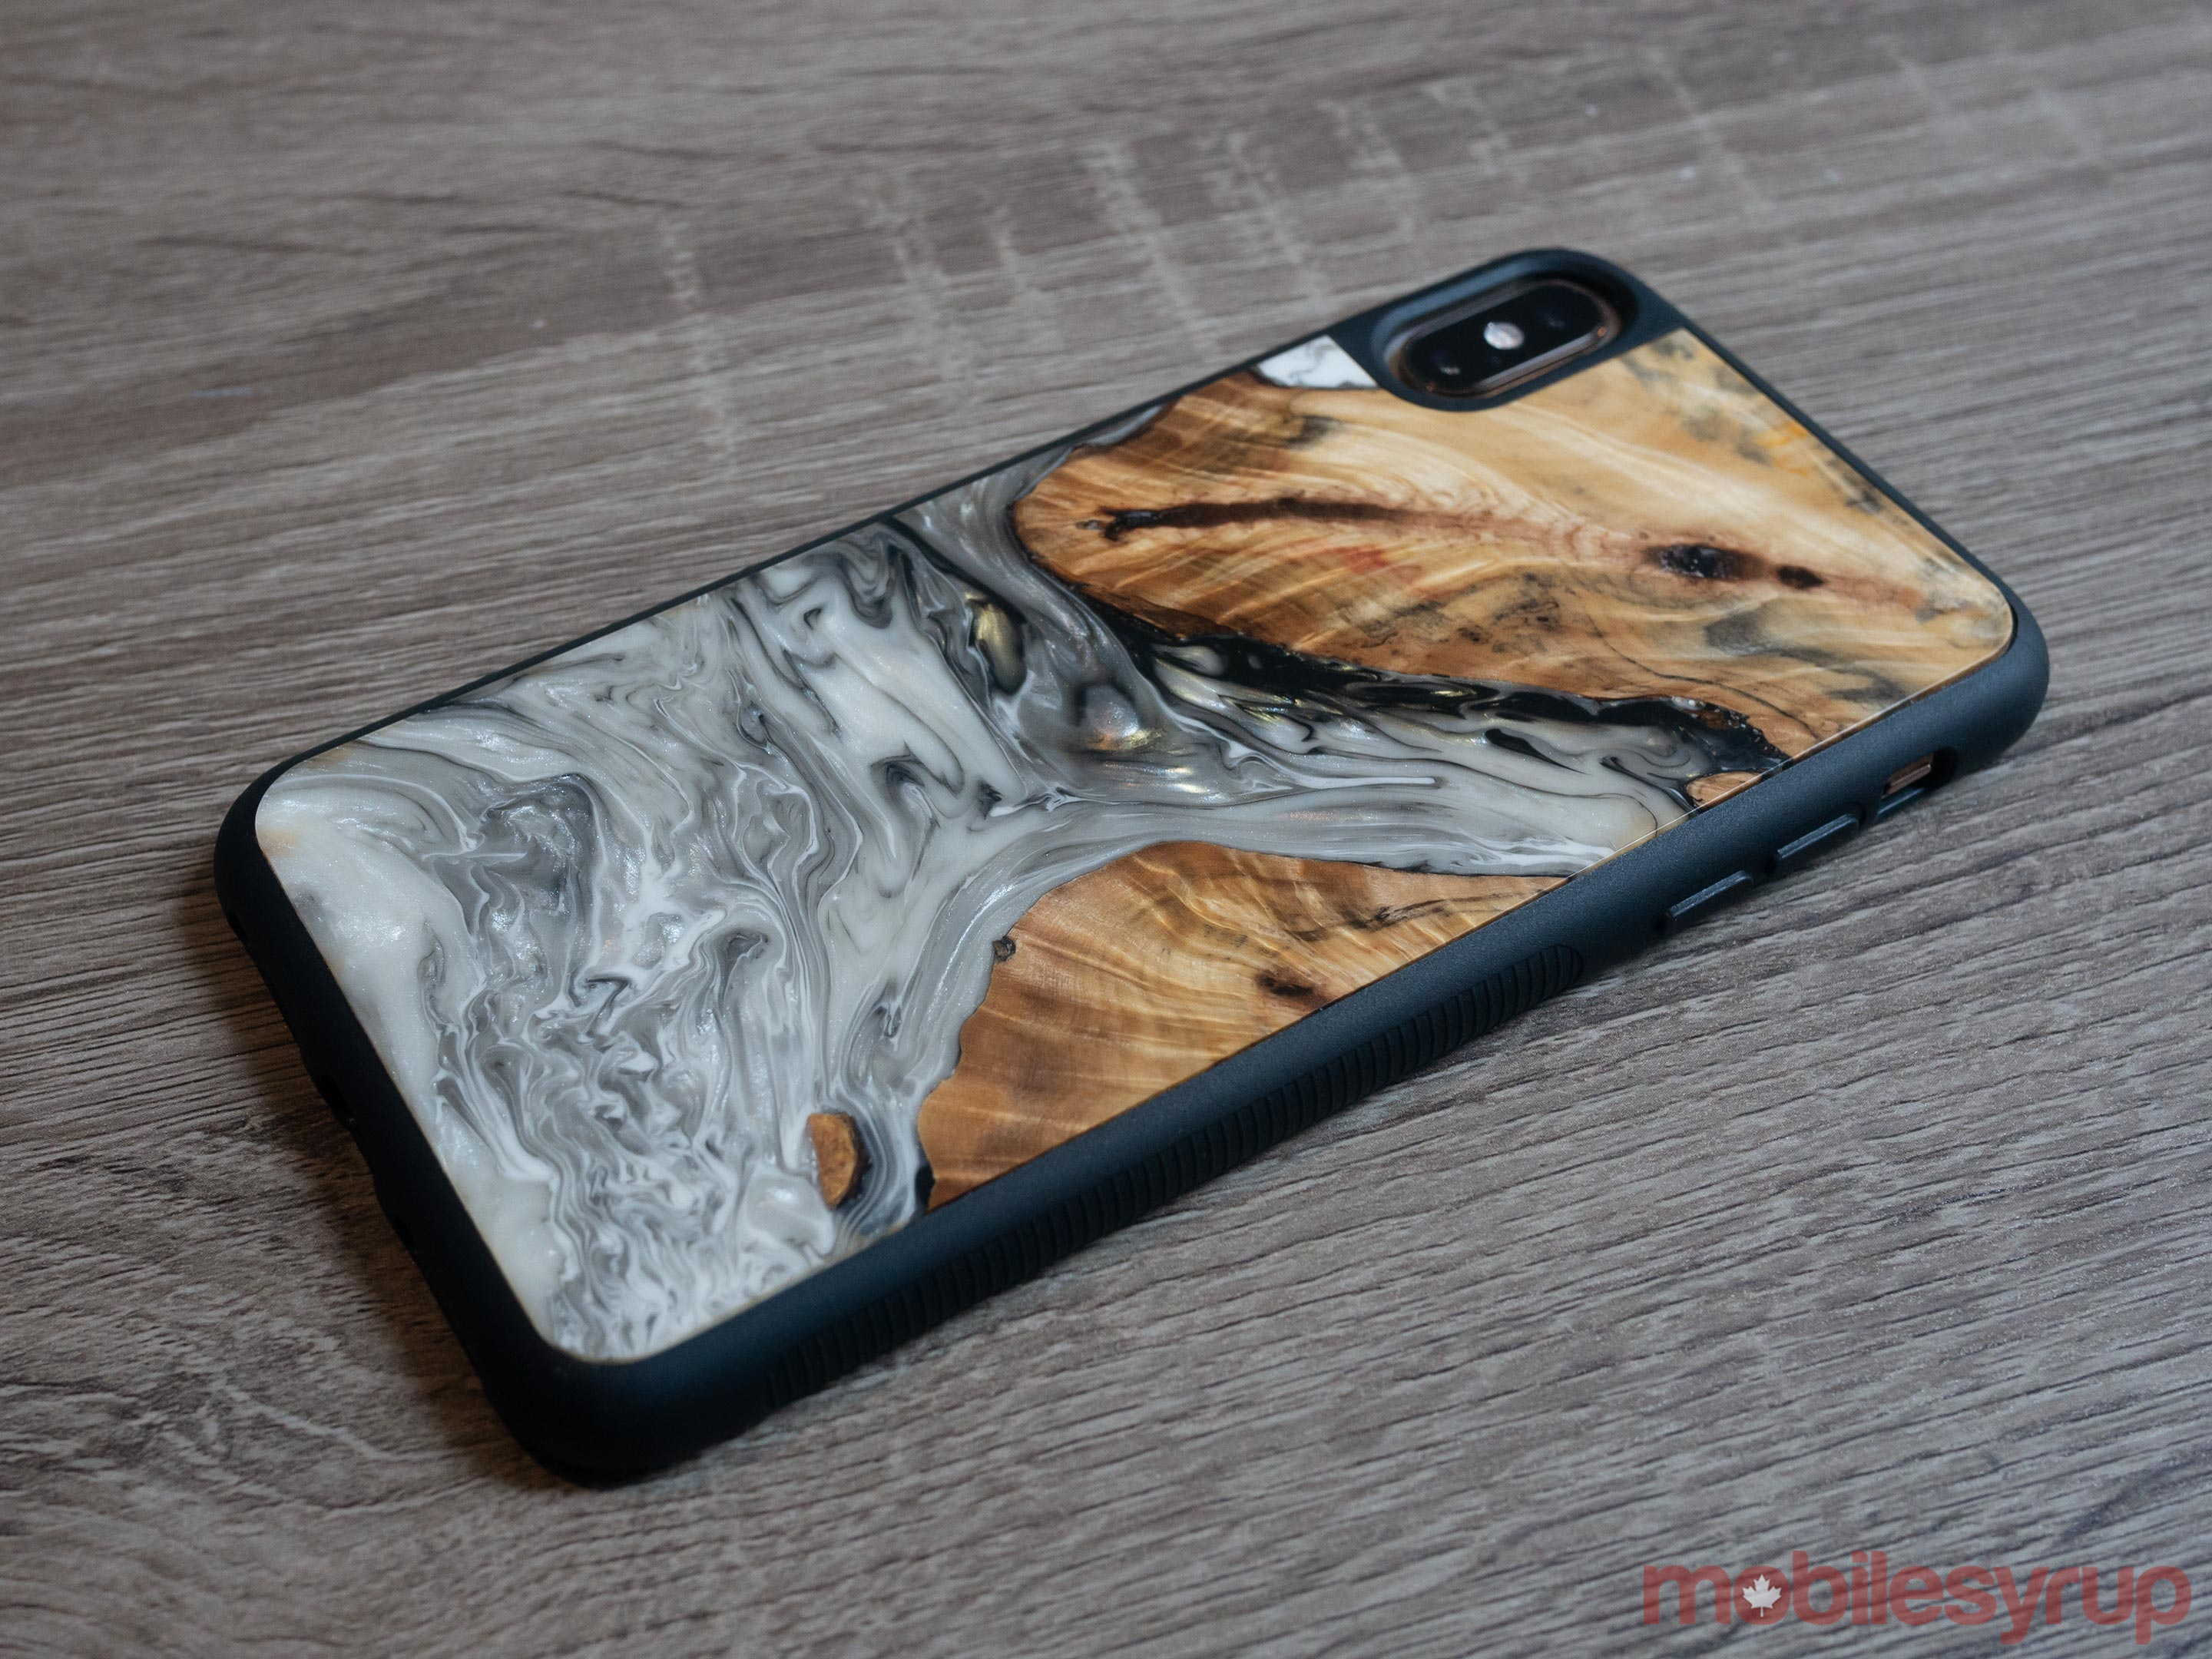 Carved smartphone case side view